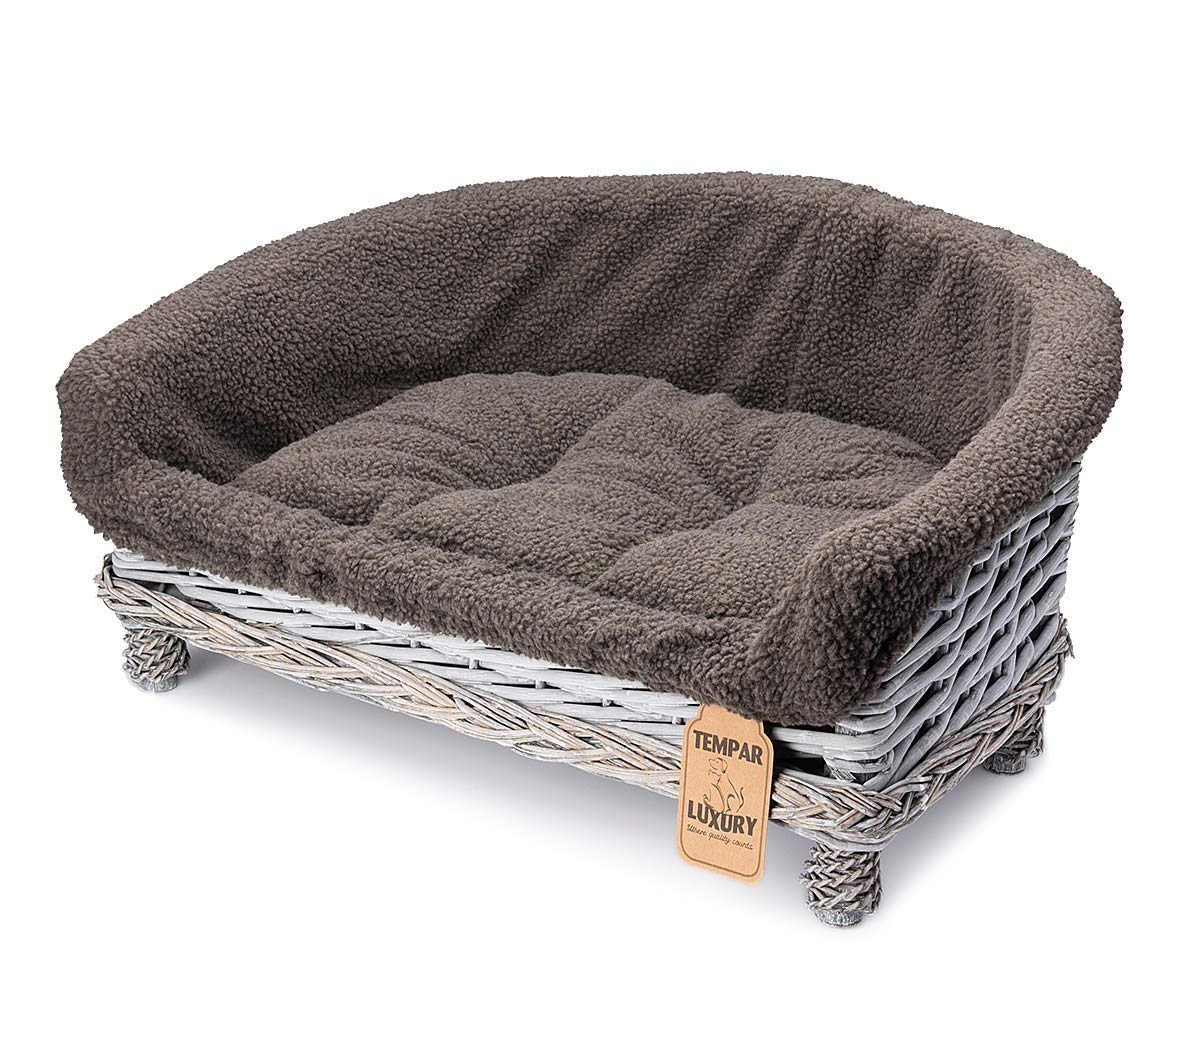 Awesome Tempar Luxury Handmade Half Moon Wicker Pet Cat Dog Sofa Couch Cushion Blanket Beds Free Replacement Cushion And Cover Medium Dark Grey Andrewgaddart Wooden Chair Designs For Living Room Andrewgaddartcom